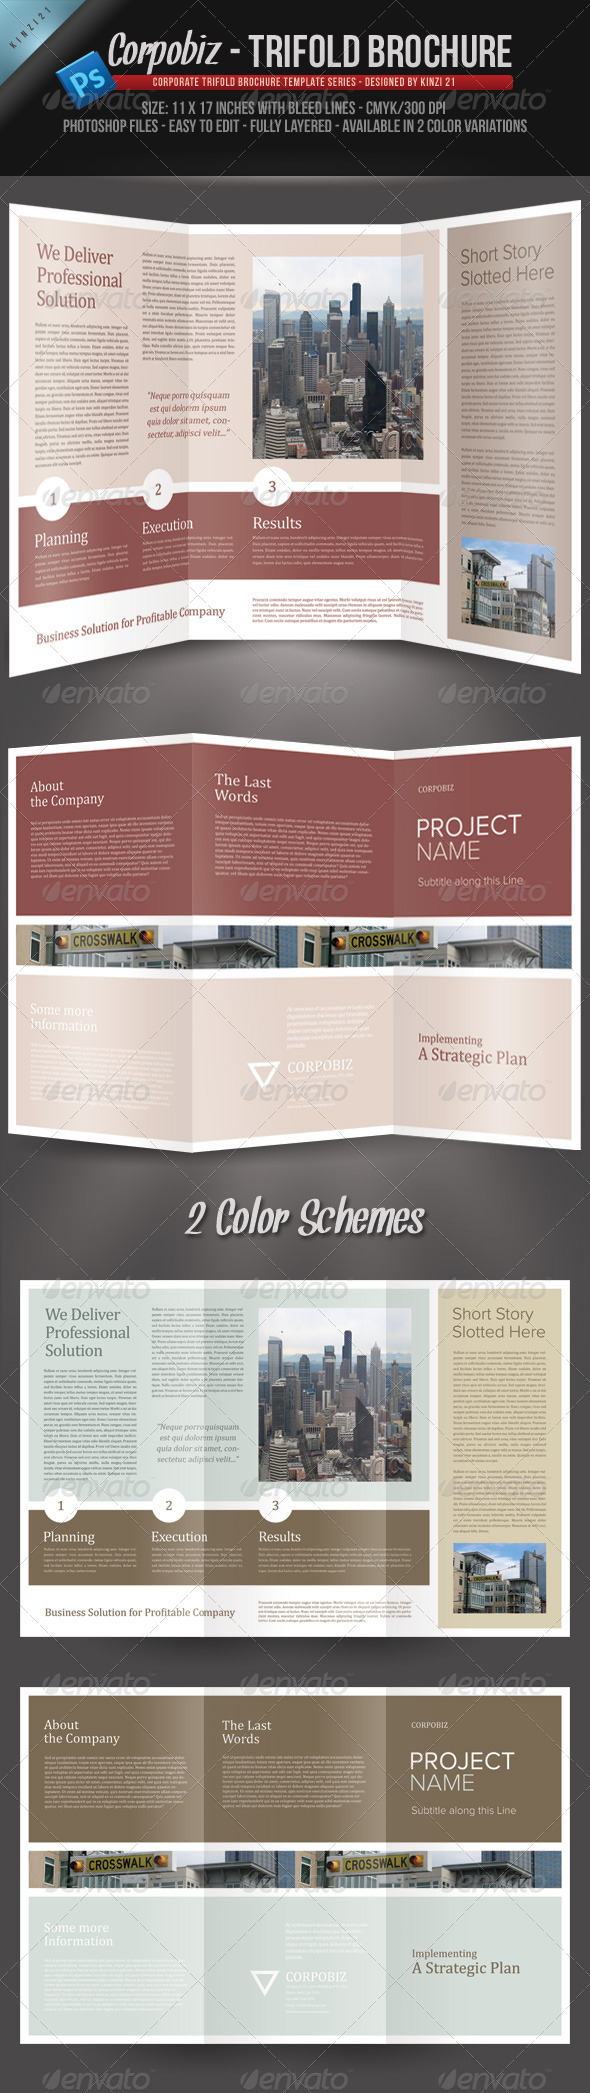 Corpobiz Trifold Brochure - PSD Template - Corporate Brochures